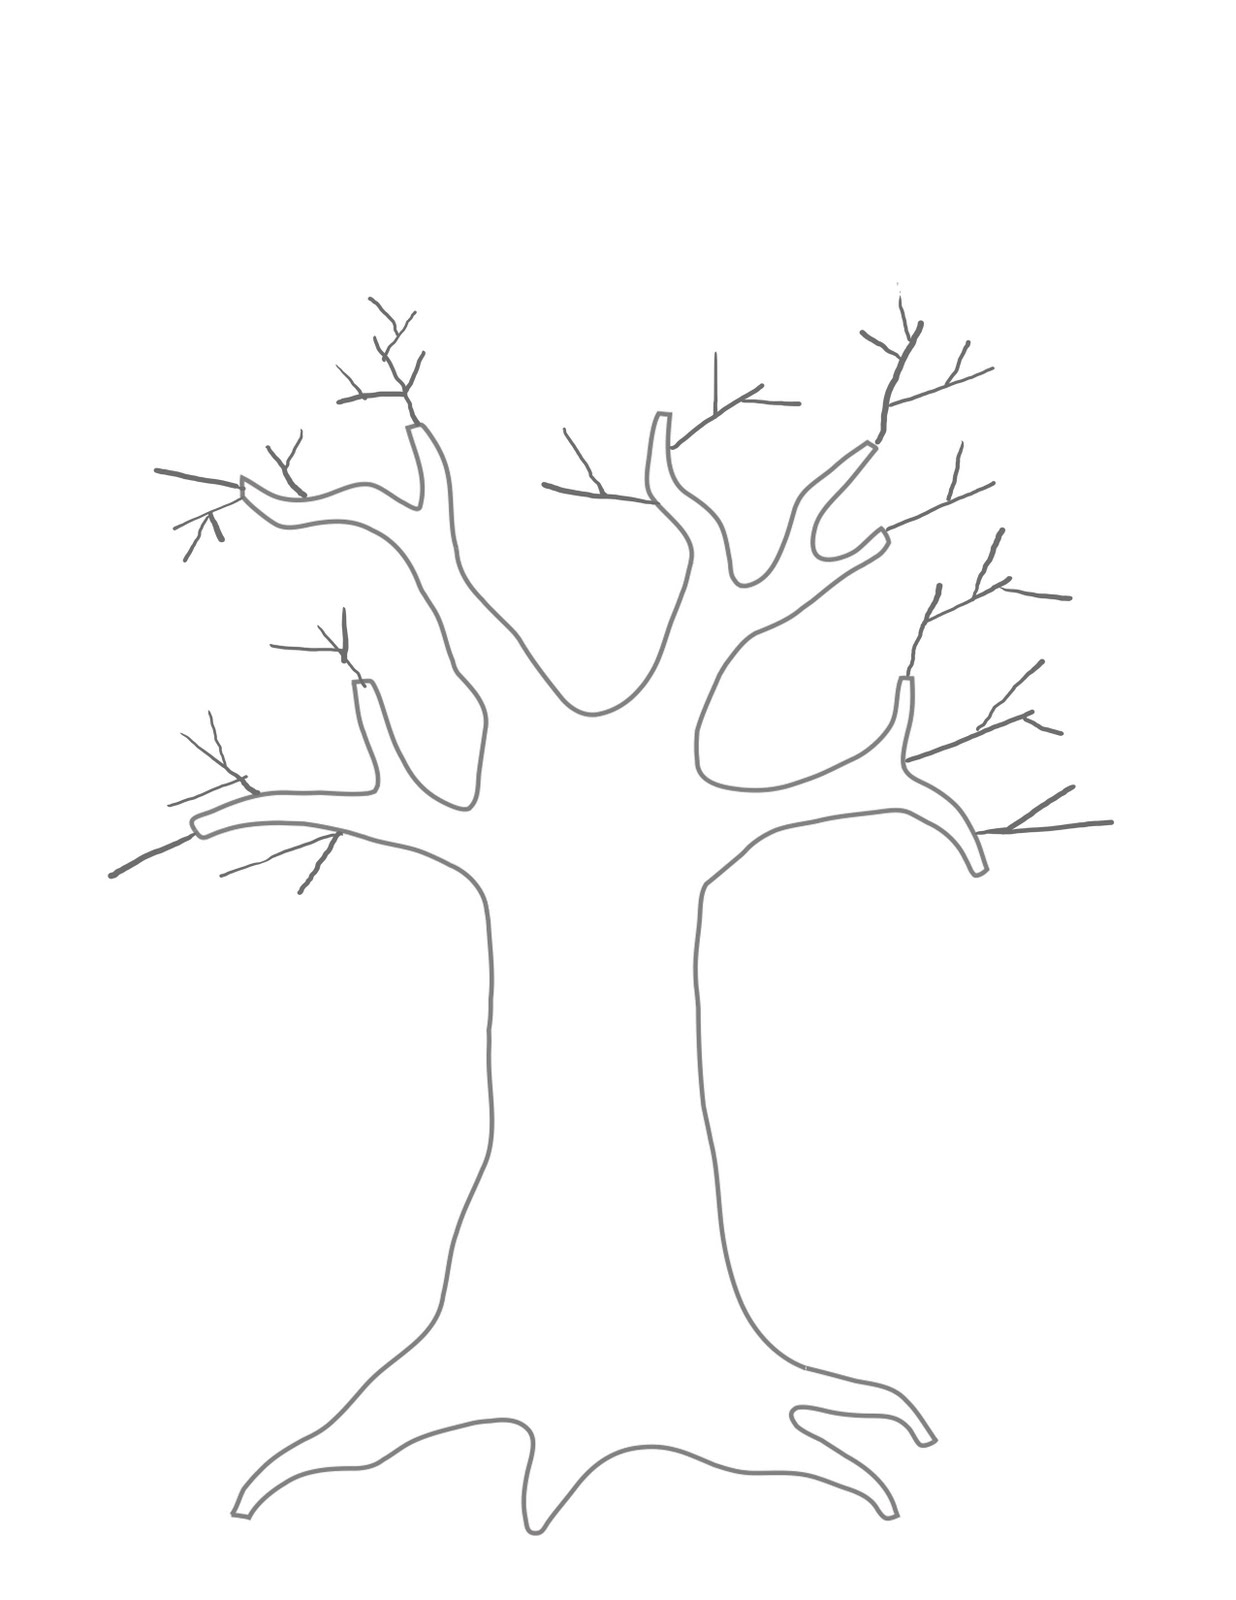 Modest image intended for printable tree template